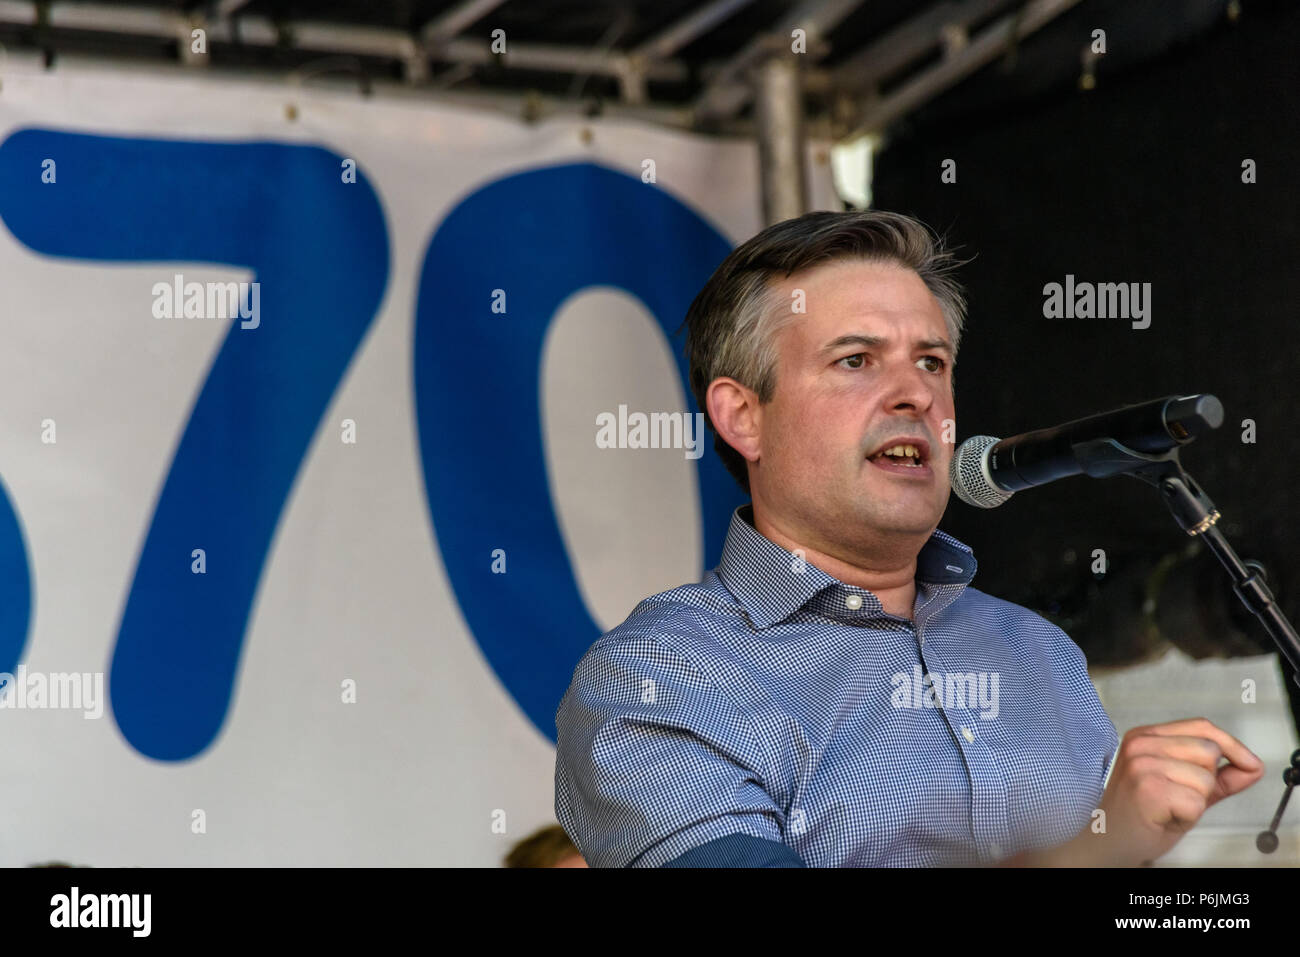 June 30, 2018 - London, UK. 30th June 2018. Shadow Health Minister Jonathan Ashworth MP speaks at the rally near Downing St to celebrate 70 years of the NHS, and to support its dedicated workers in demanding a publicly owned NHS that is free for all with proper funding and proper staffing and providing a world class services for every community. The protest, organised by the the People's Assembly, Health Campaigns Together, Trades Union Congress, Unison, Unite, GMB, British Medical Association, Royal College of Nursing, Royal College of Midwives, CSP, BDA, and SoR was to defend the NHS again - Stock Image